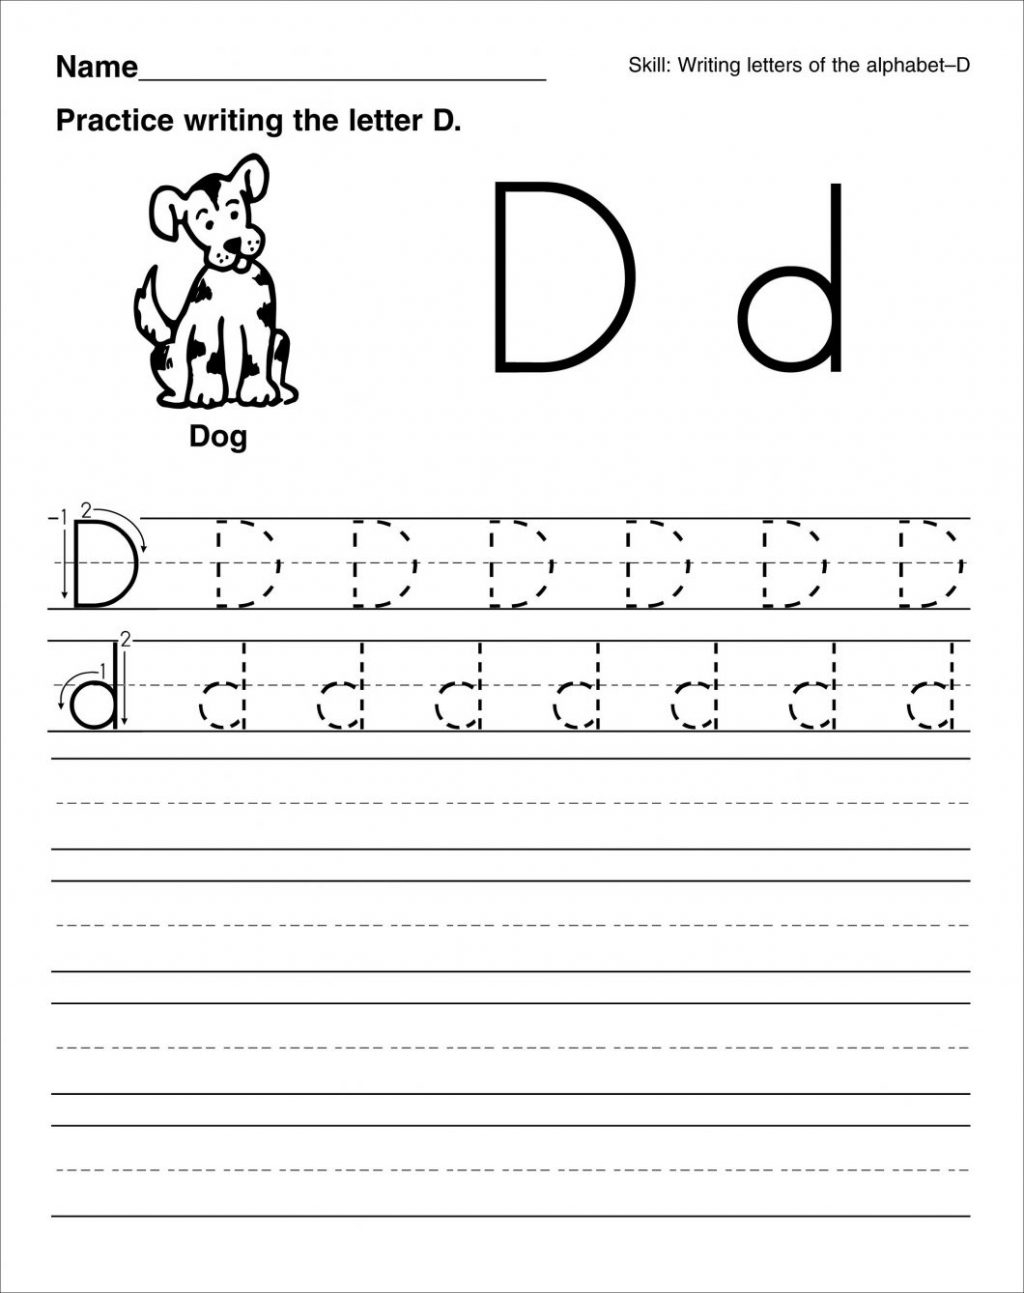 Simple Greetings And Polite Essions Worksheets For with regard to Letter D Worksheets For Preschool Pdf